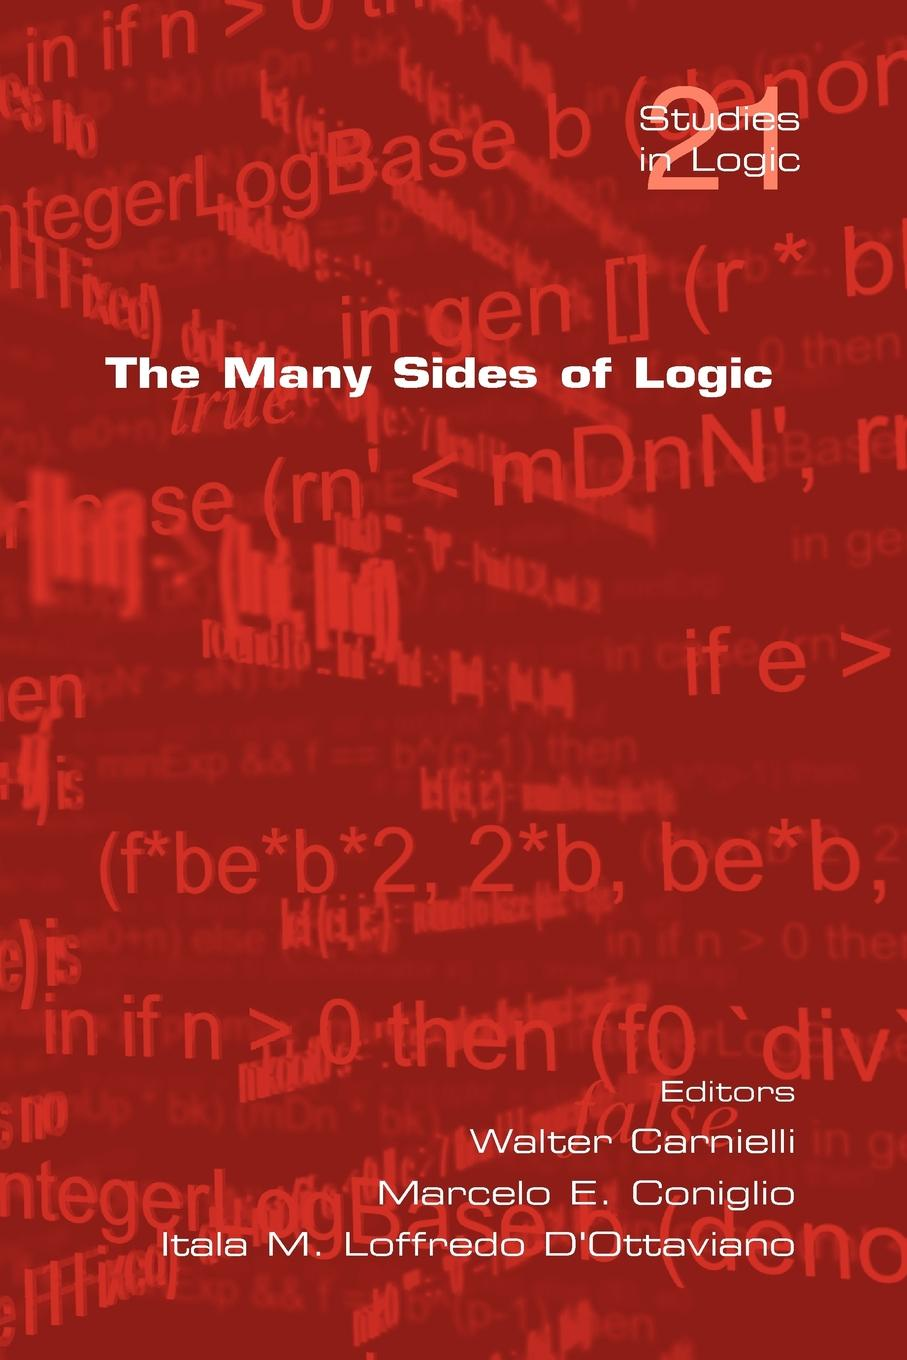 The Many Sides of Logic logic methodology and philosophy of science logic and science facing the new technologies